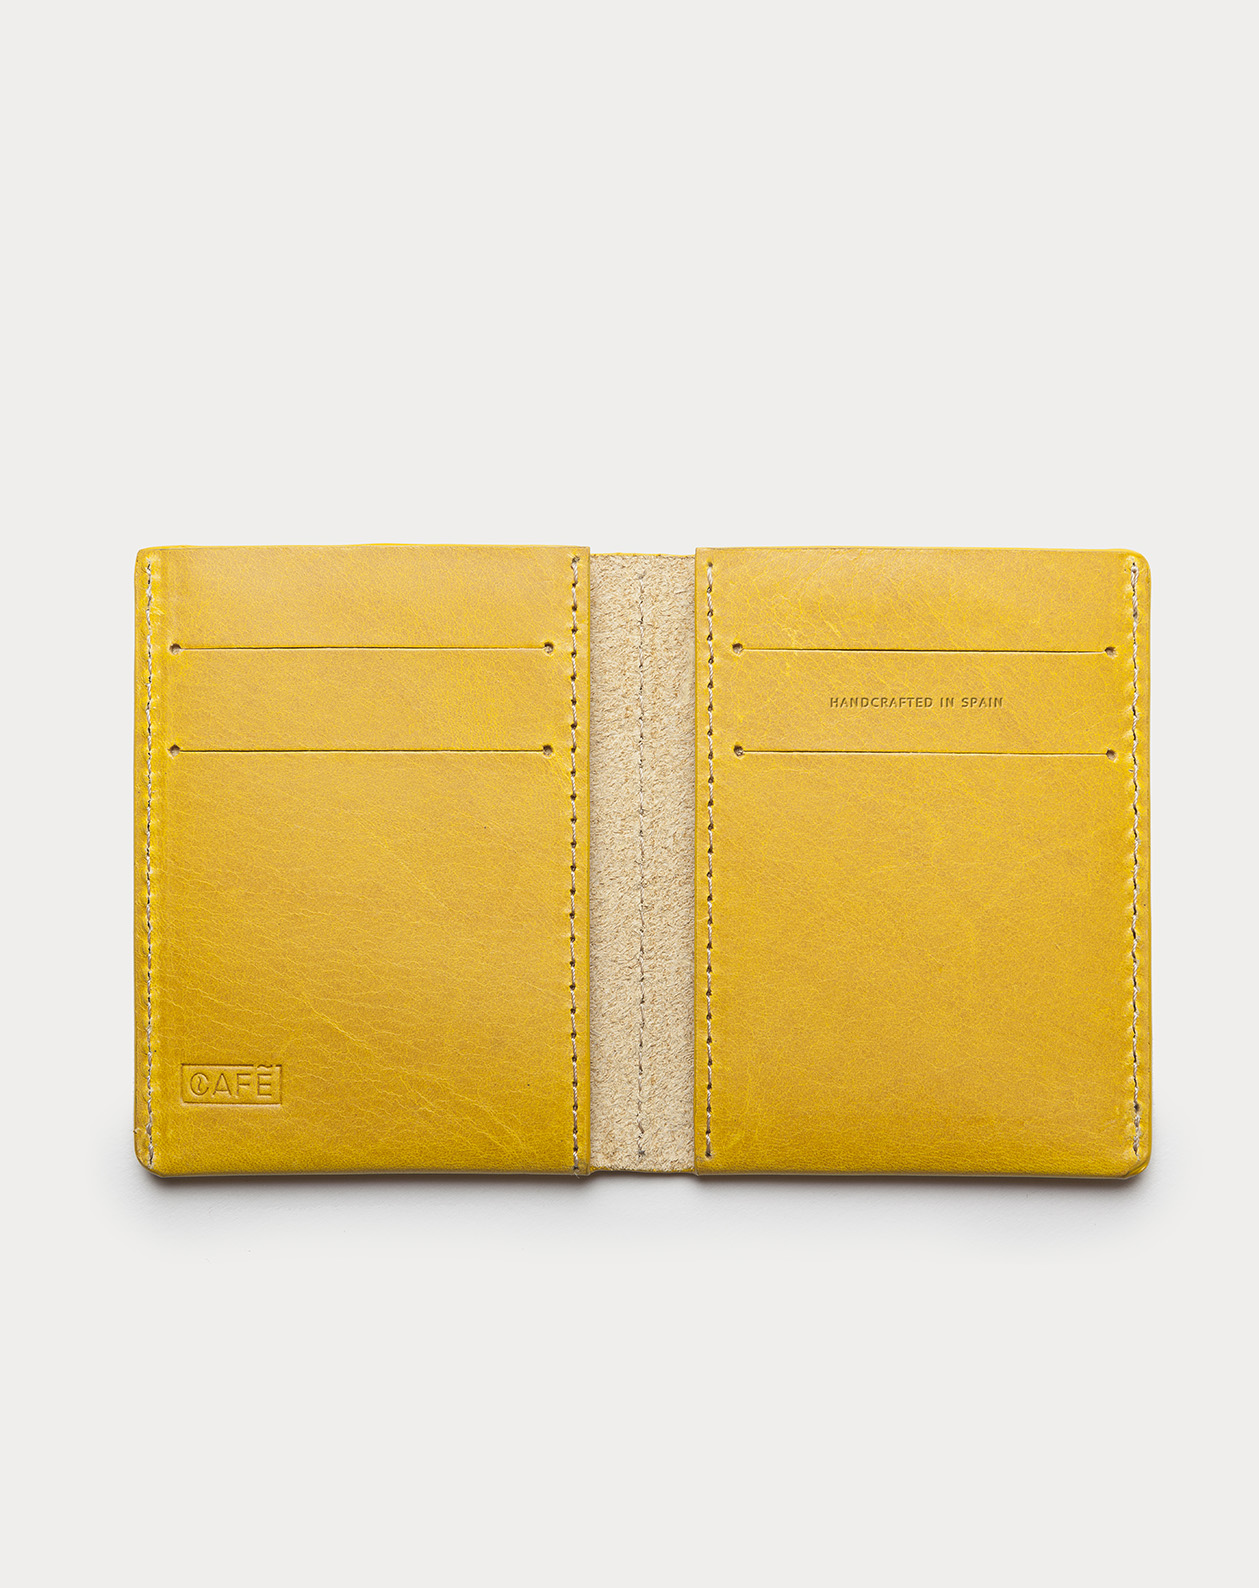 slim wallet yellow for cards and bills